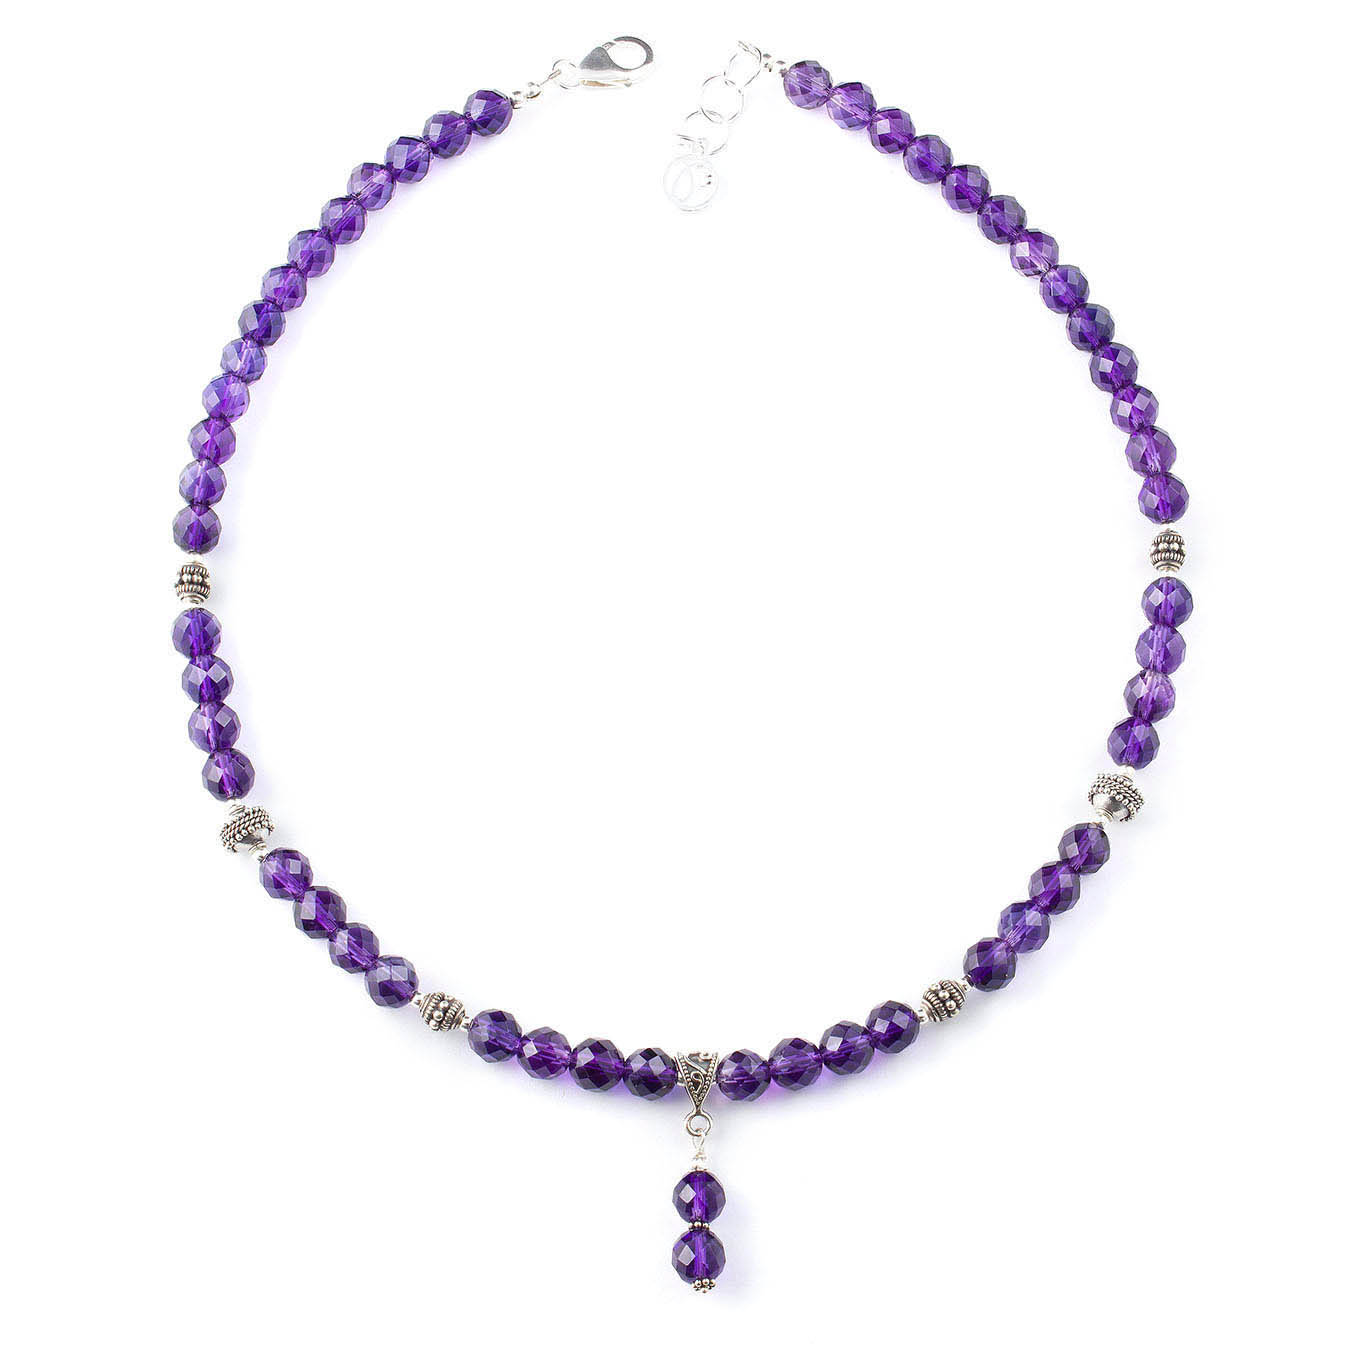 Amethyst and bali silver beaded jewelry birthstone necklace set